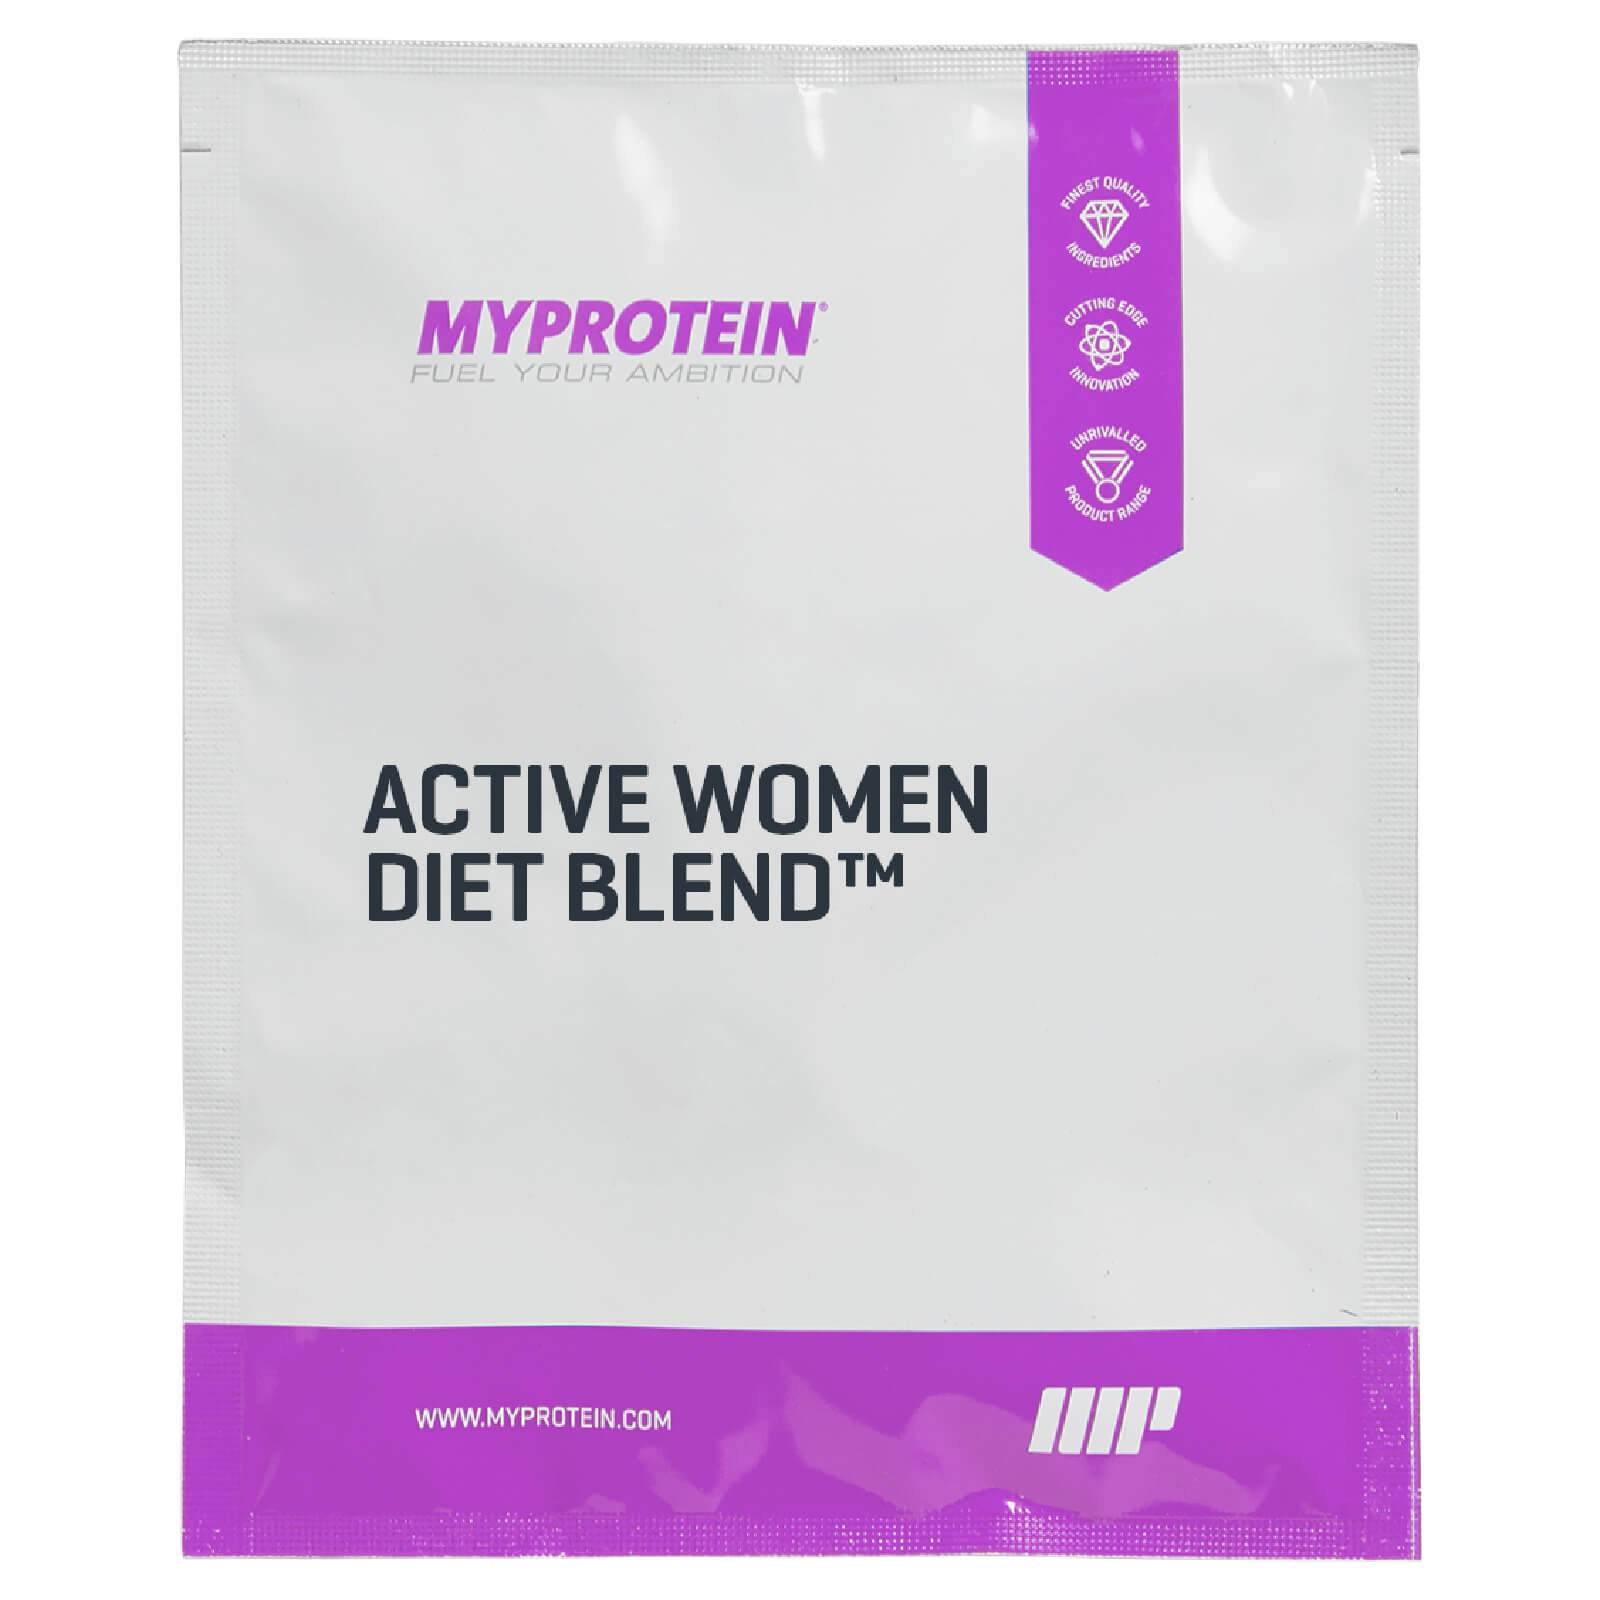 Myprotein Diet Protein-sekoitus (näyte) - 25g - Chocolate Fudge Brownie